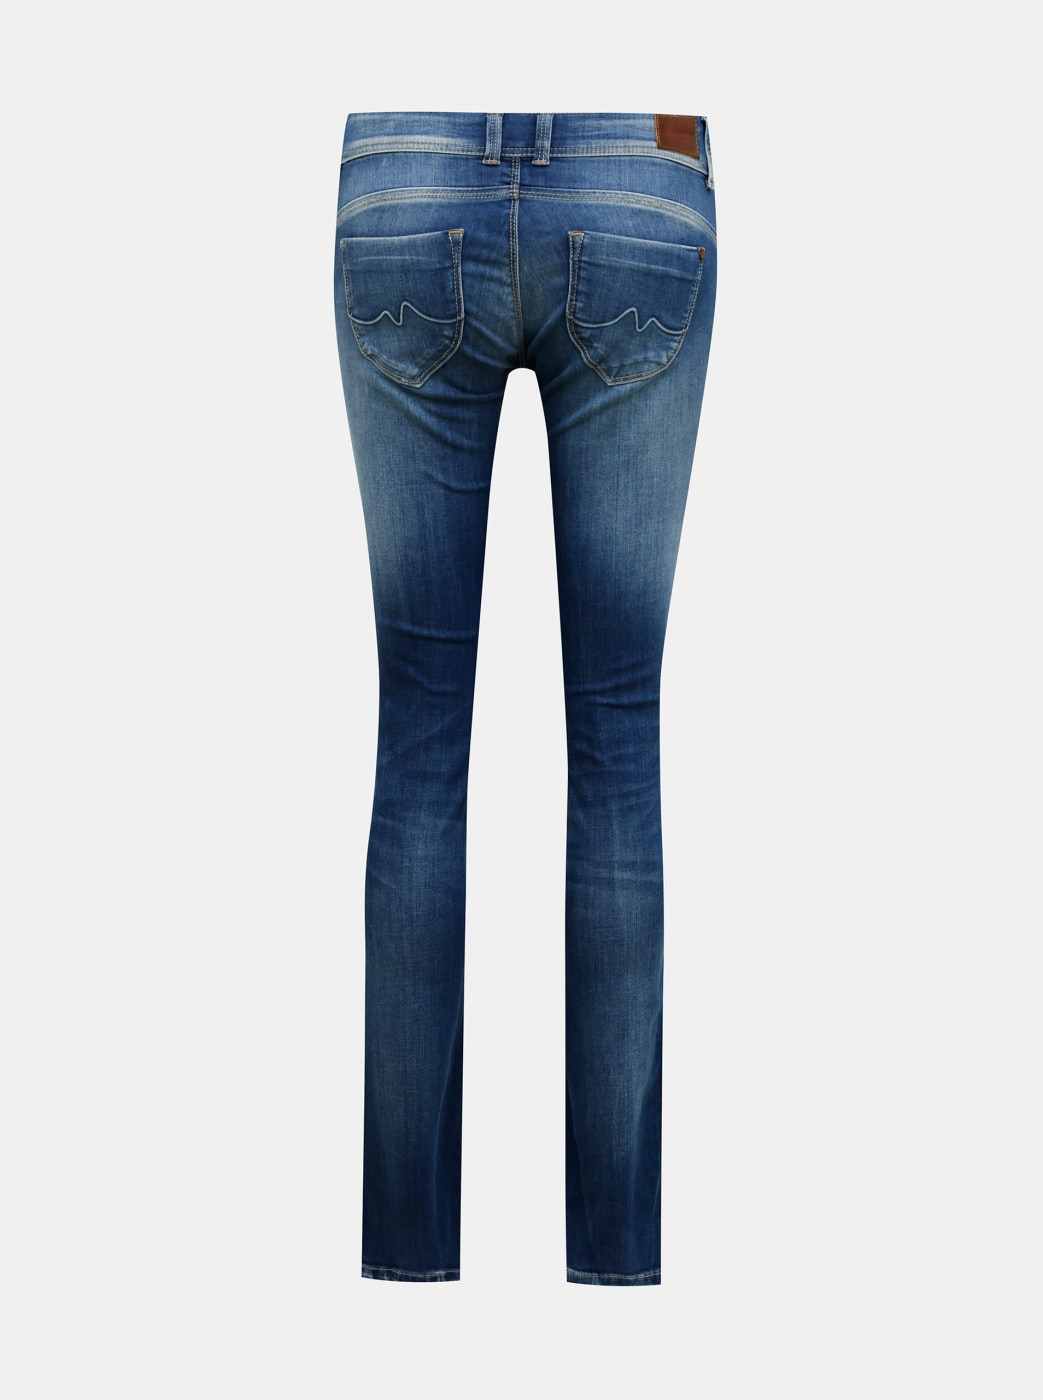 Blue Women's Slim Fit Jeans Pepe